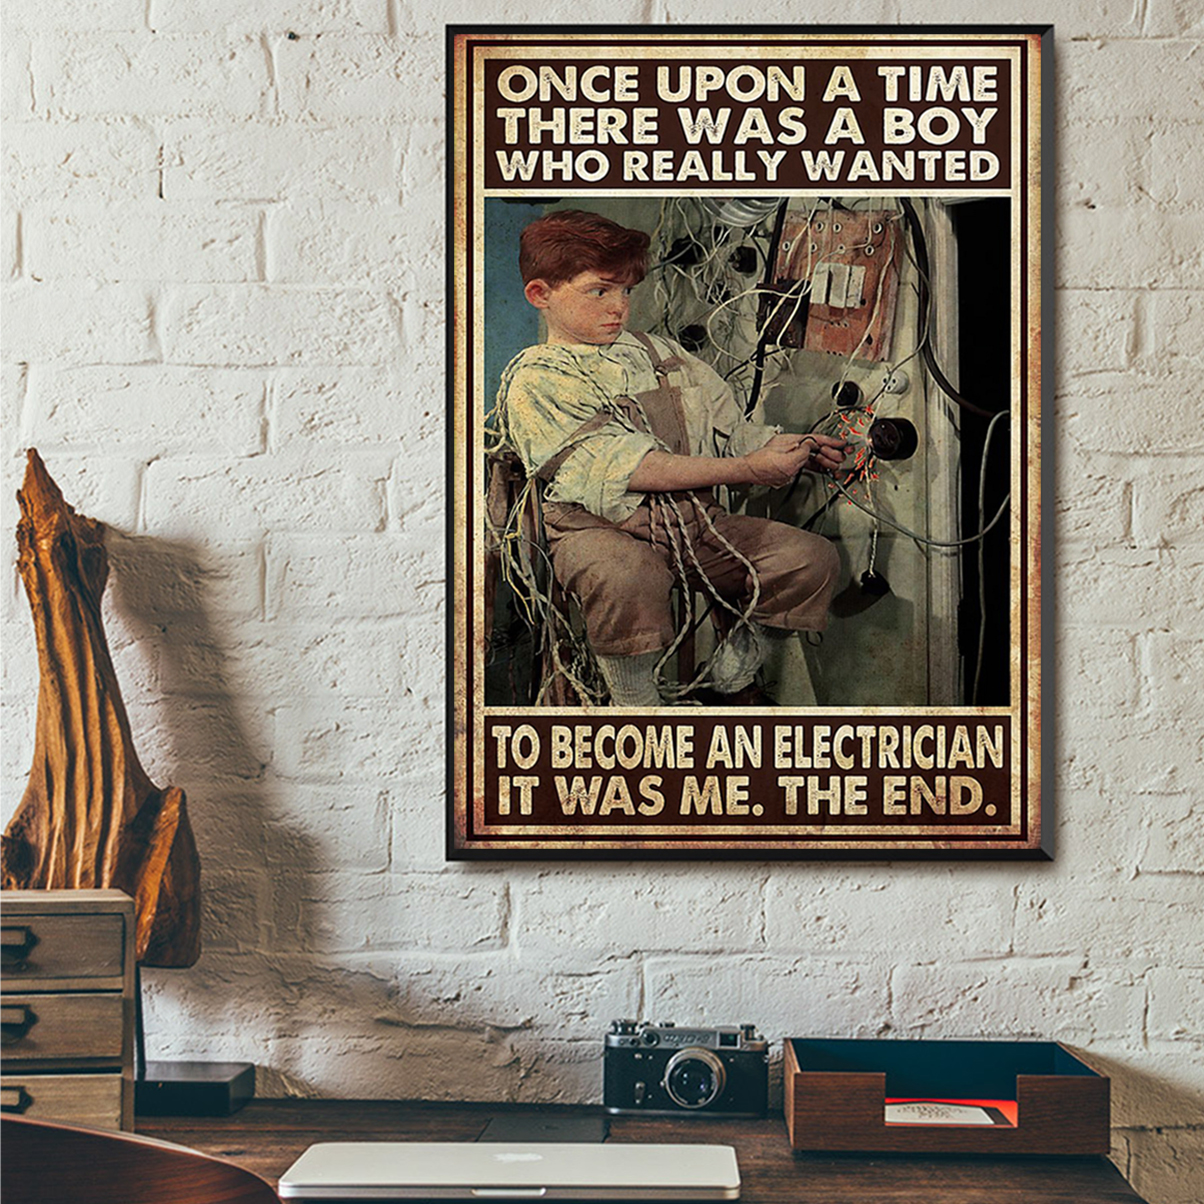 Once upon a time there was a boy who really wanted to become a electrician poster A2